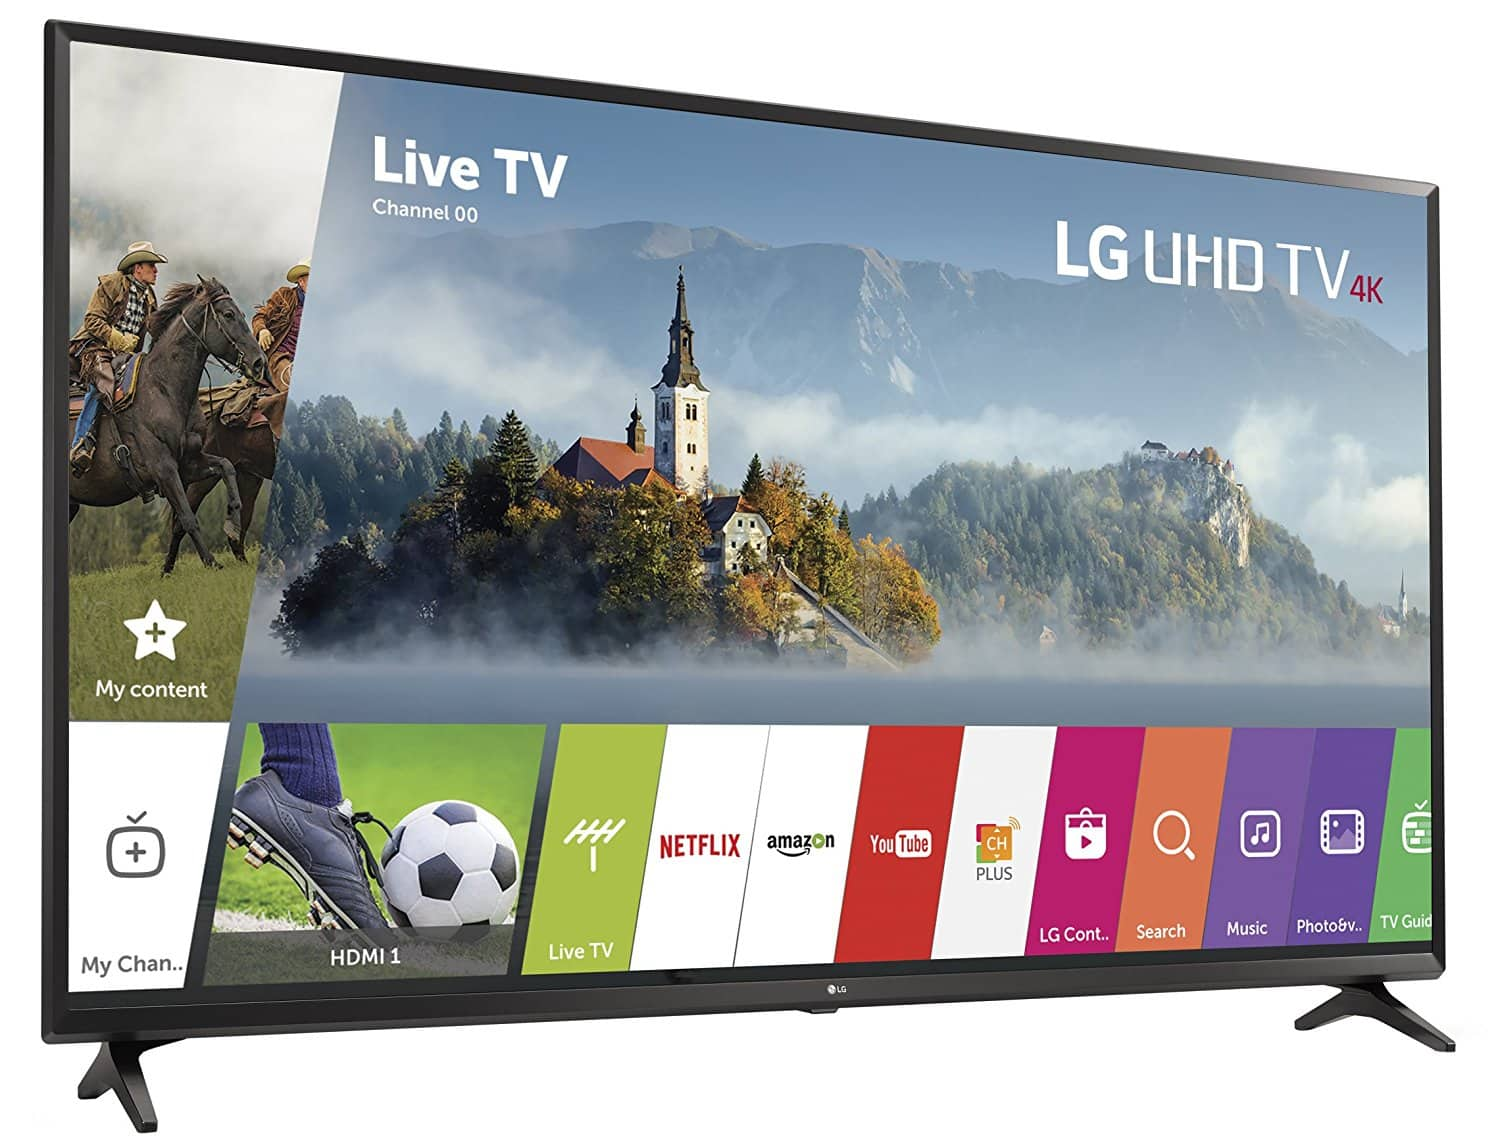 LG 43 inch 4K LED HDR Smart TV - 43UJ6300 (DELL) Includes 100$ Dell giftcard $329.99